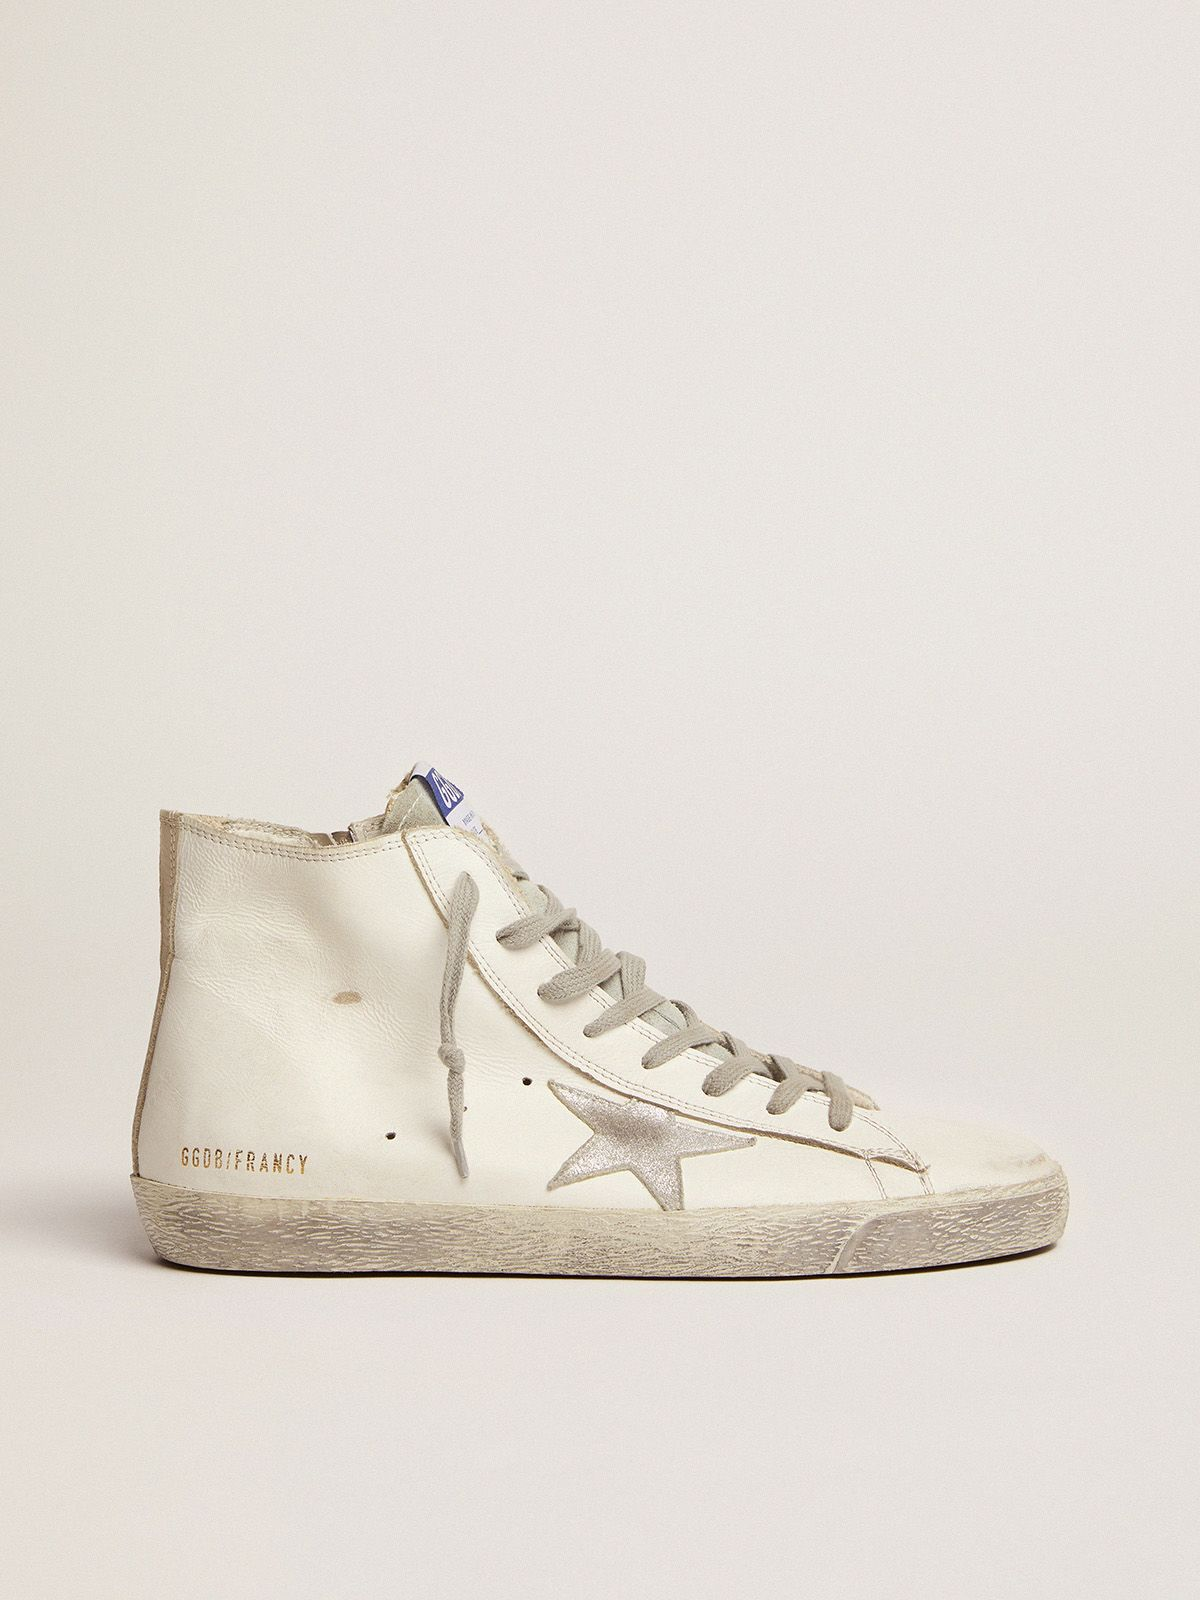 Golden Goose - Sneakers Francy in pelle con stella in camoscio argentato in